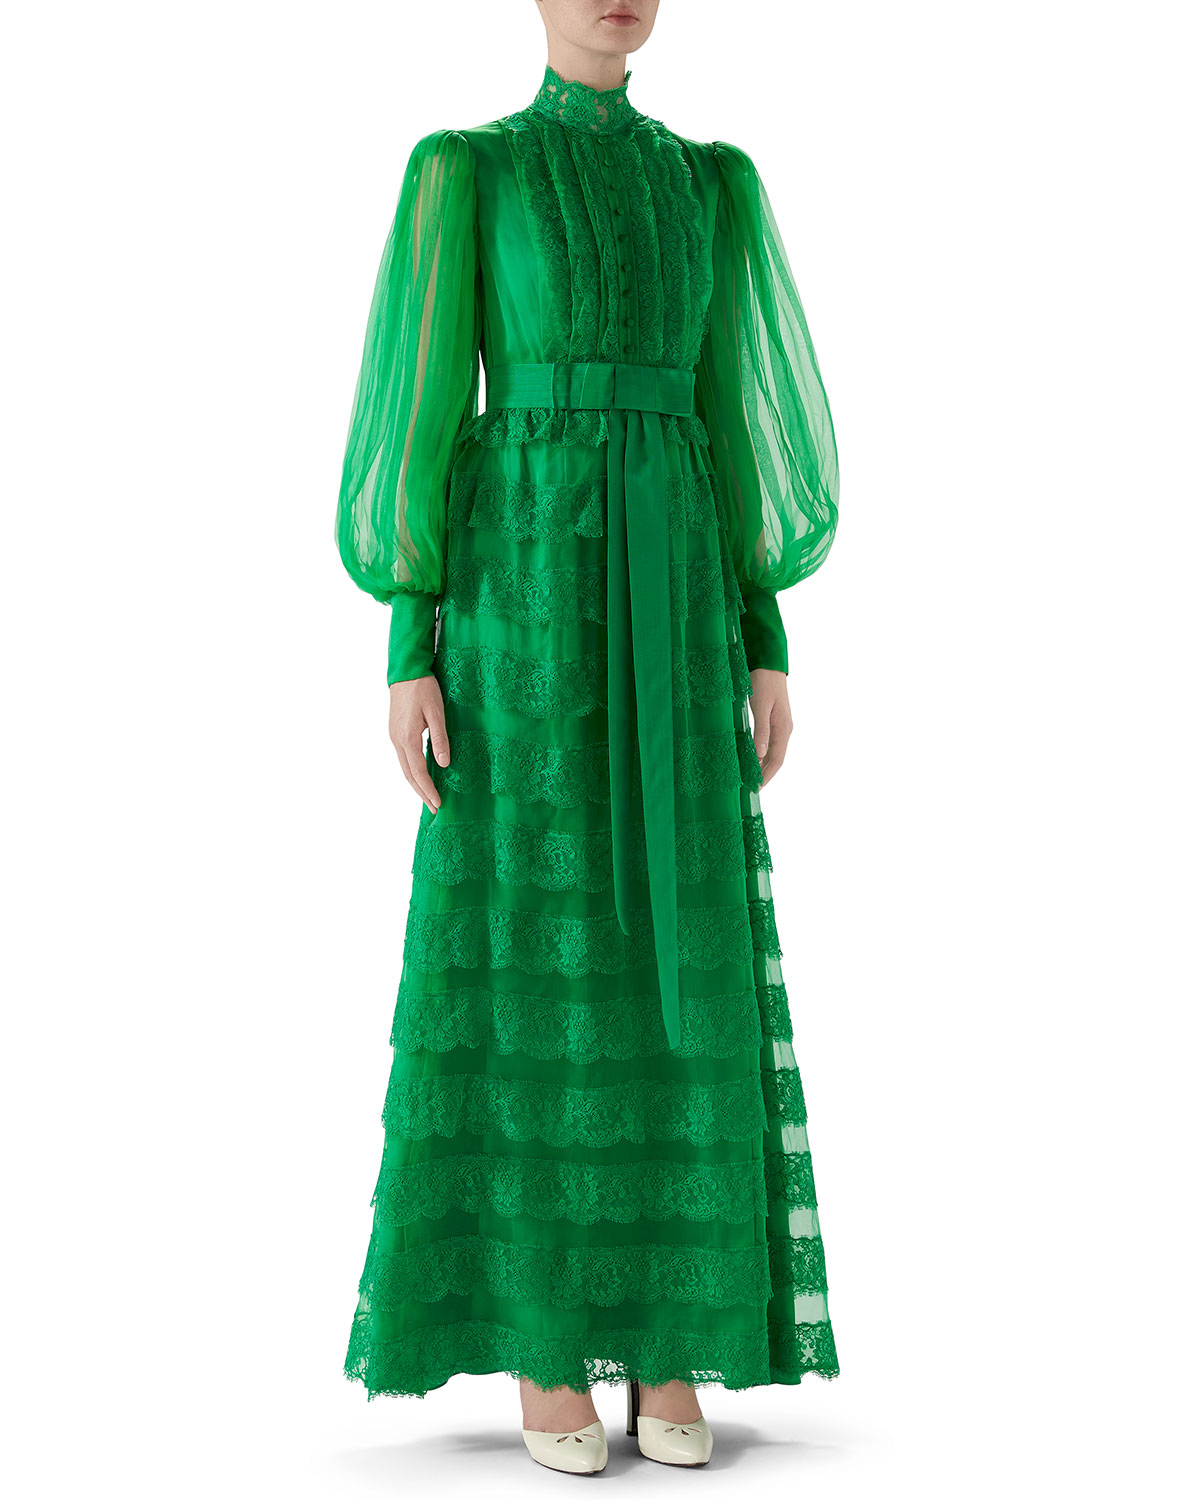 Gucci Dresses FULL-SLEEVE LIGHTWEIGHT ORGANZA DRESS